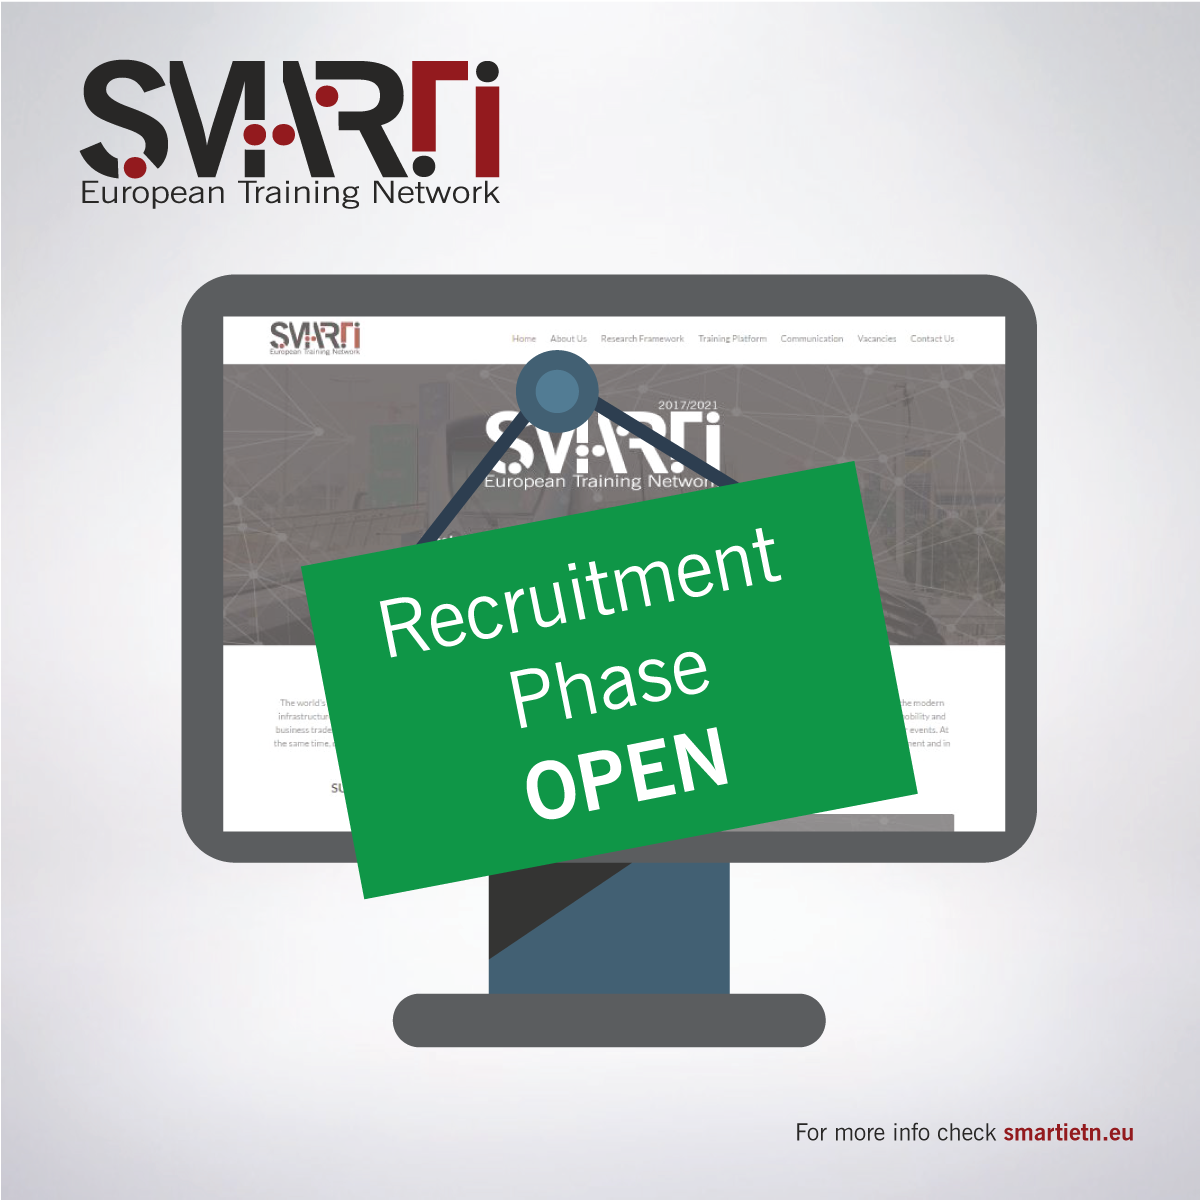 SMARTI ETN enters Open Recruitment Phase